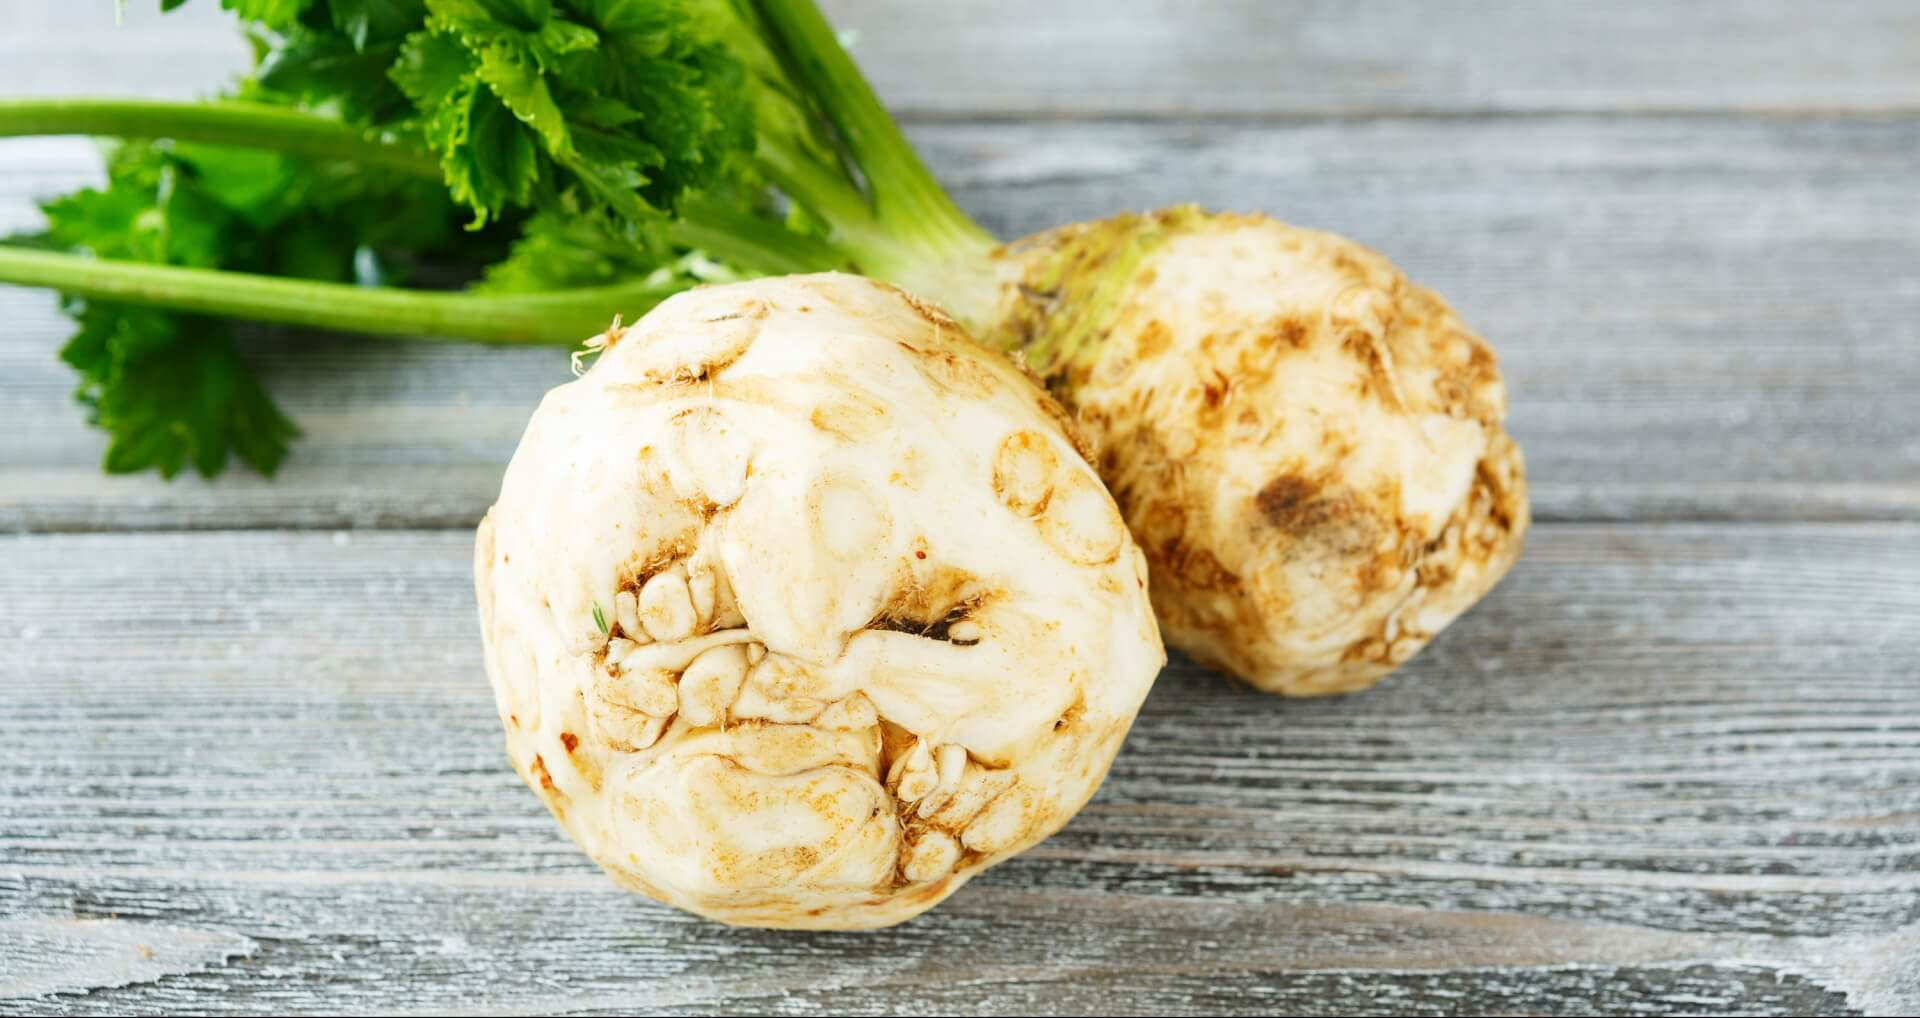 How to Cut Celery Root Image